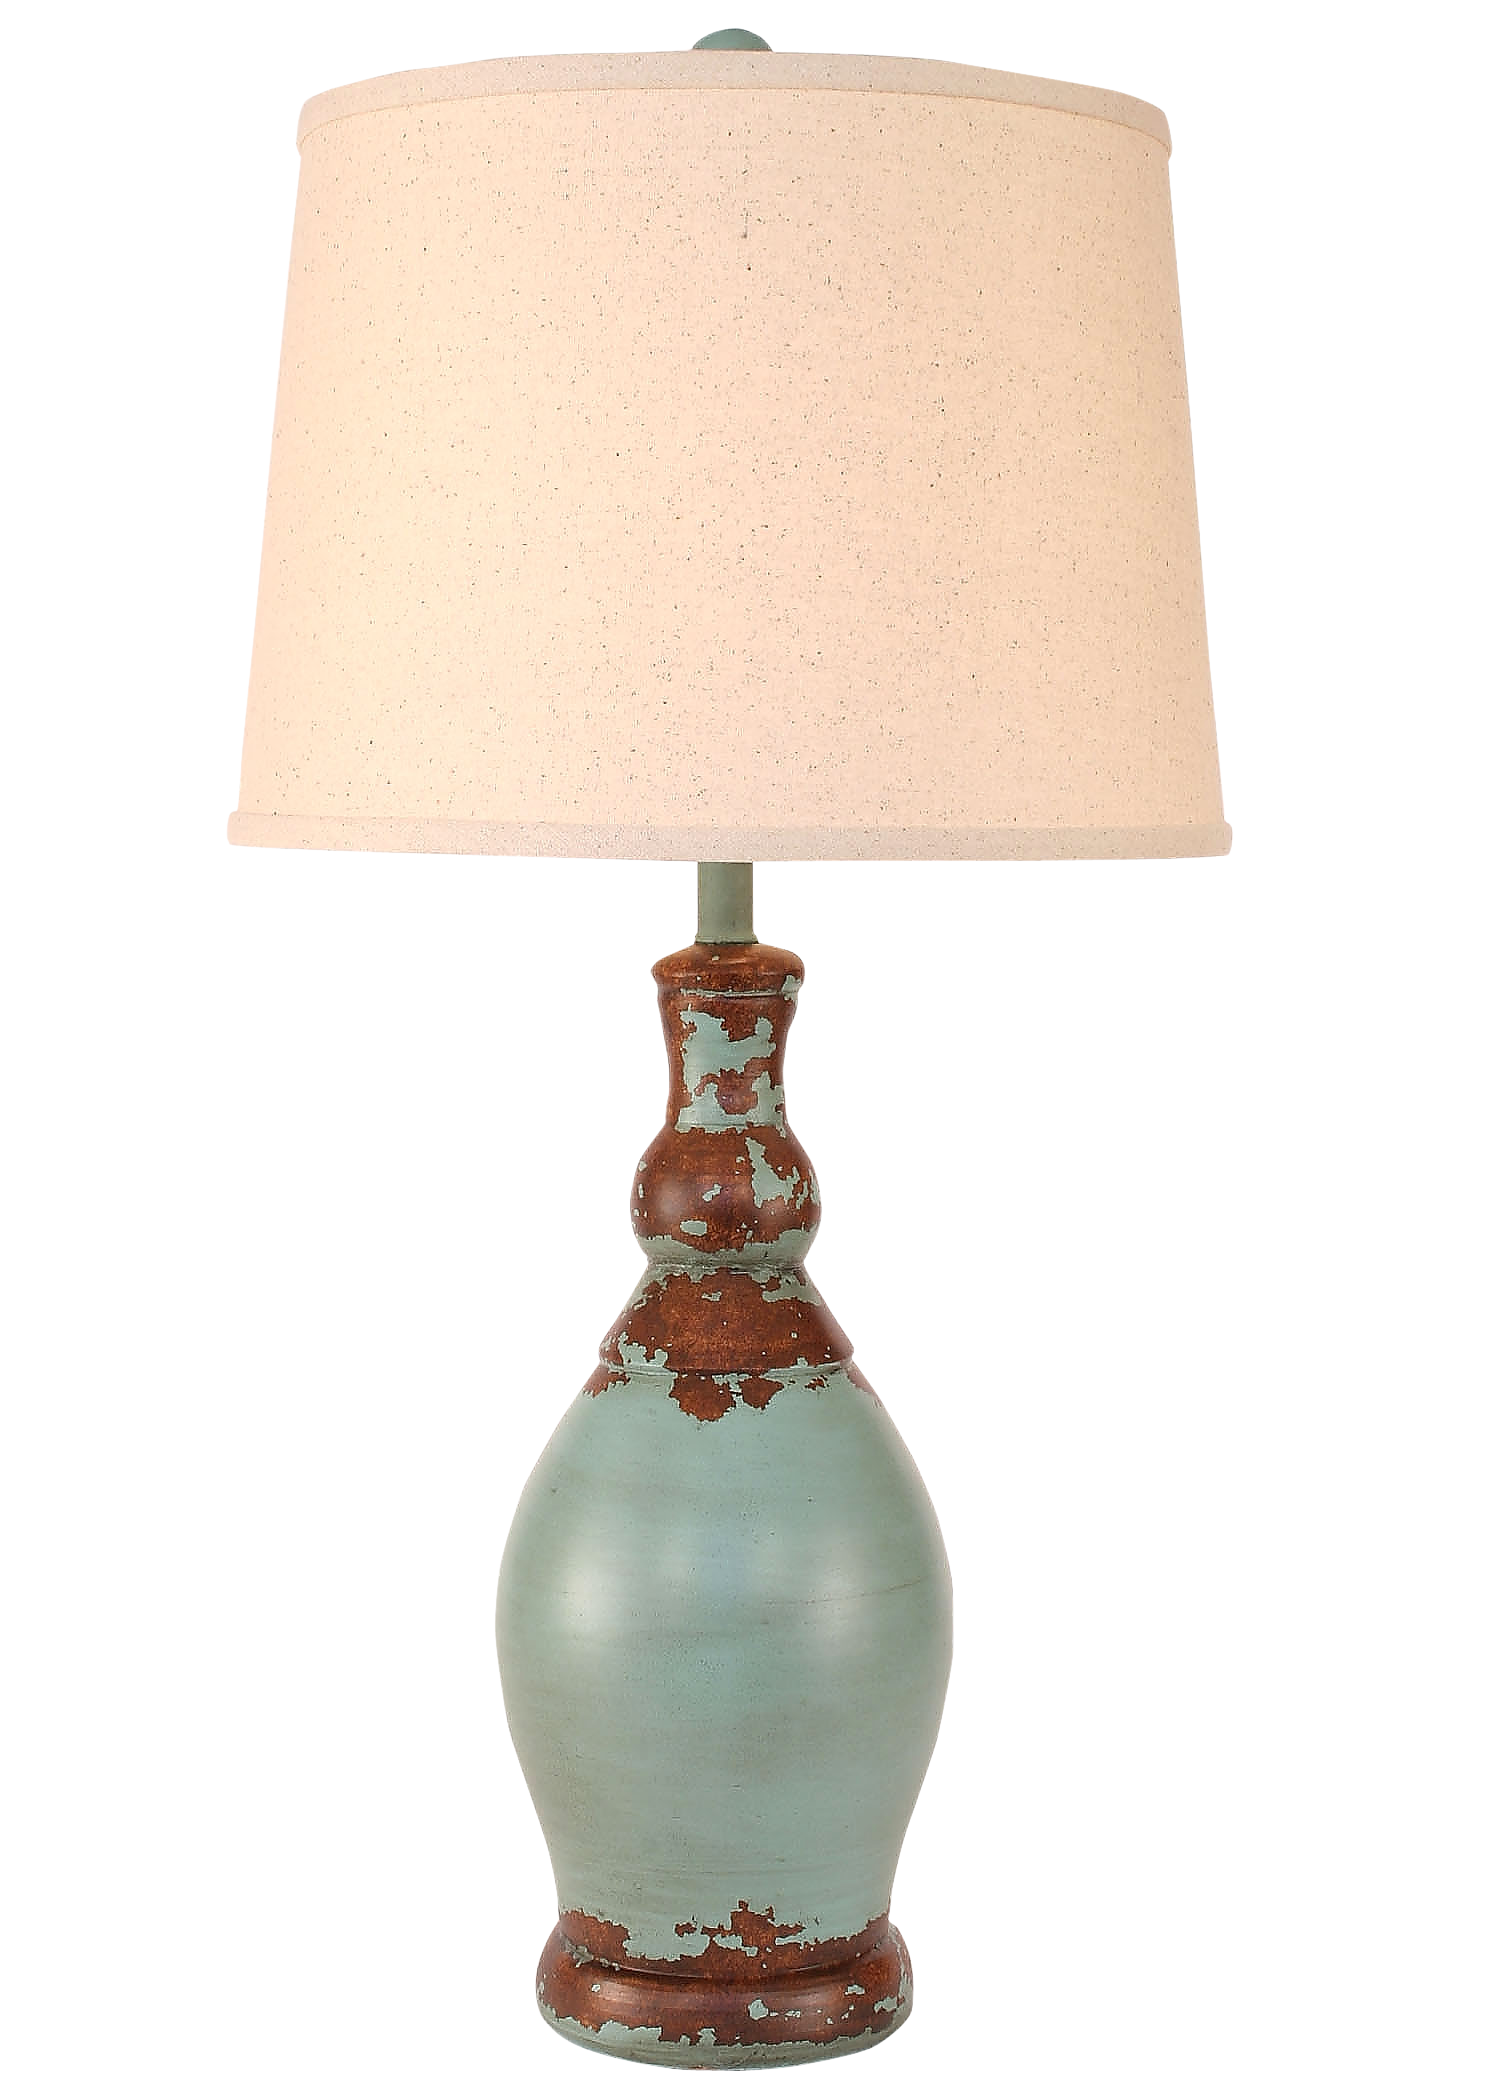 Aged Turquoise Sea Slender Neck Casual Table Lamp - Coast Lamp Shop